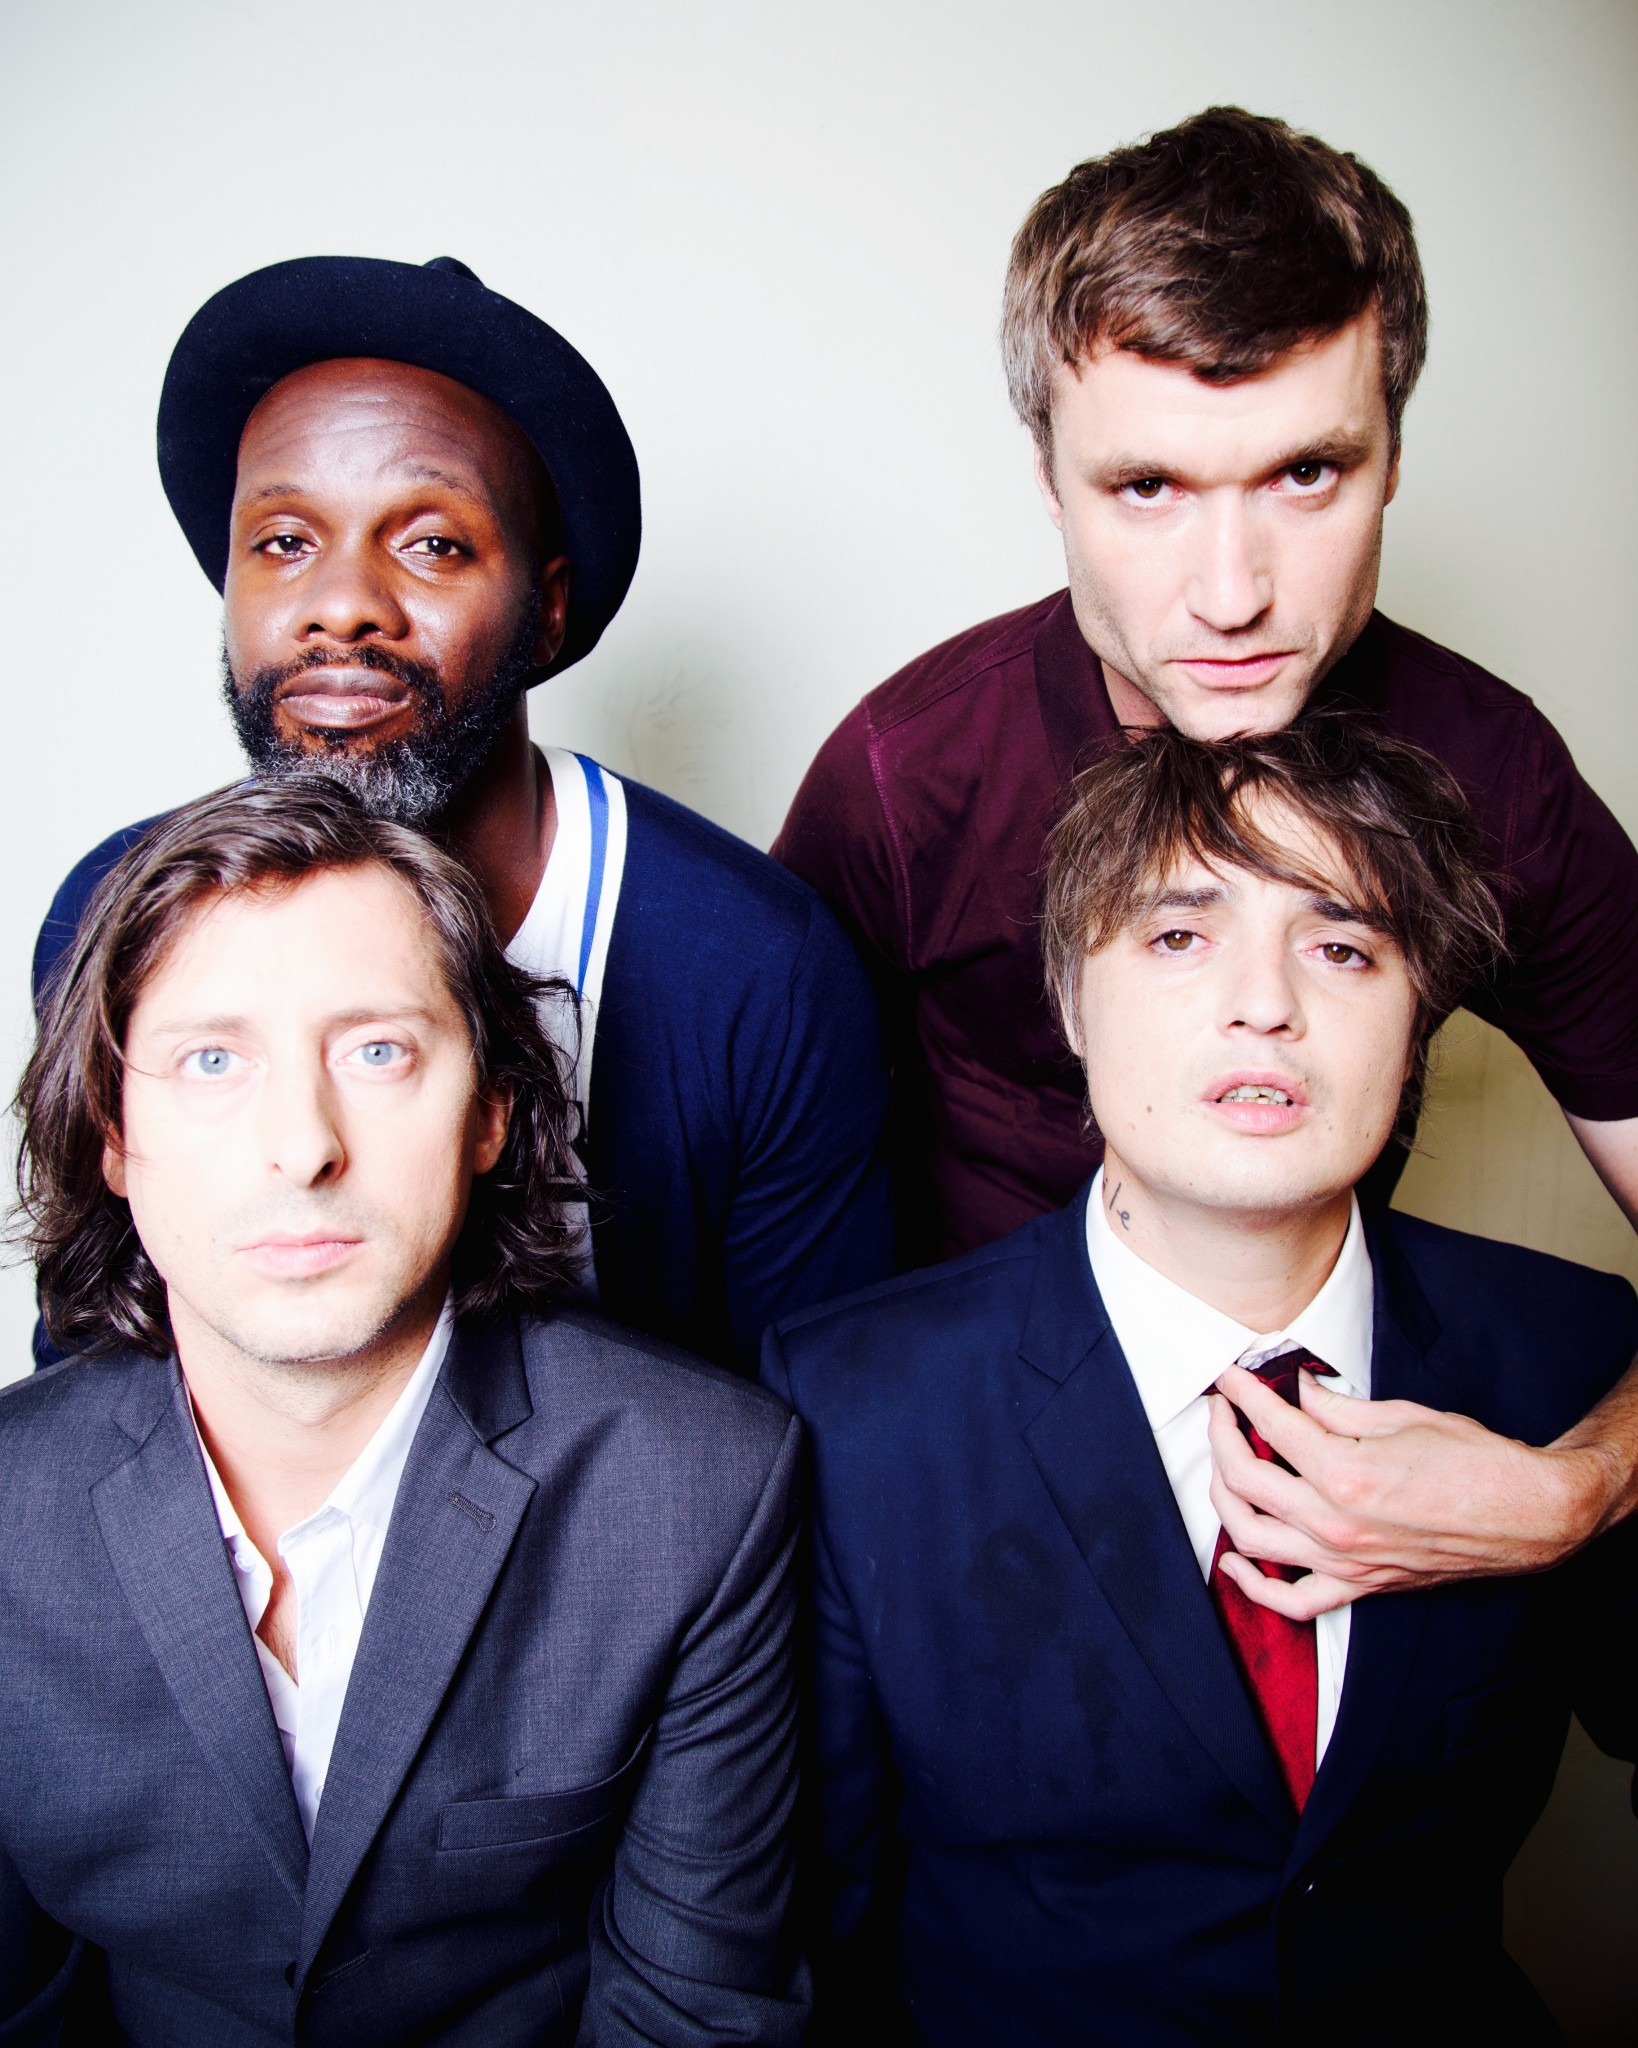 Gunga Din and Don't Look Back Into The Sun hitmakers The Libertines